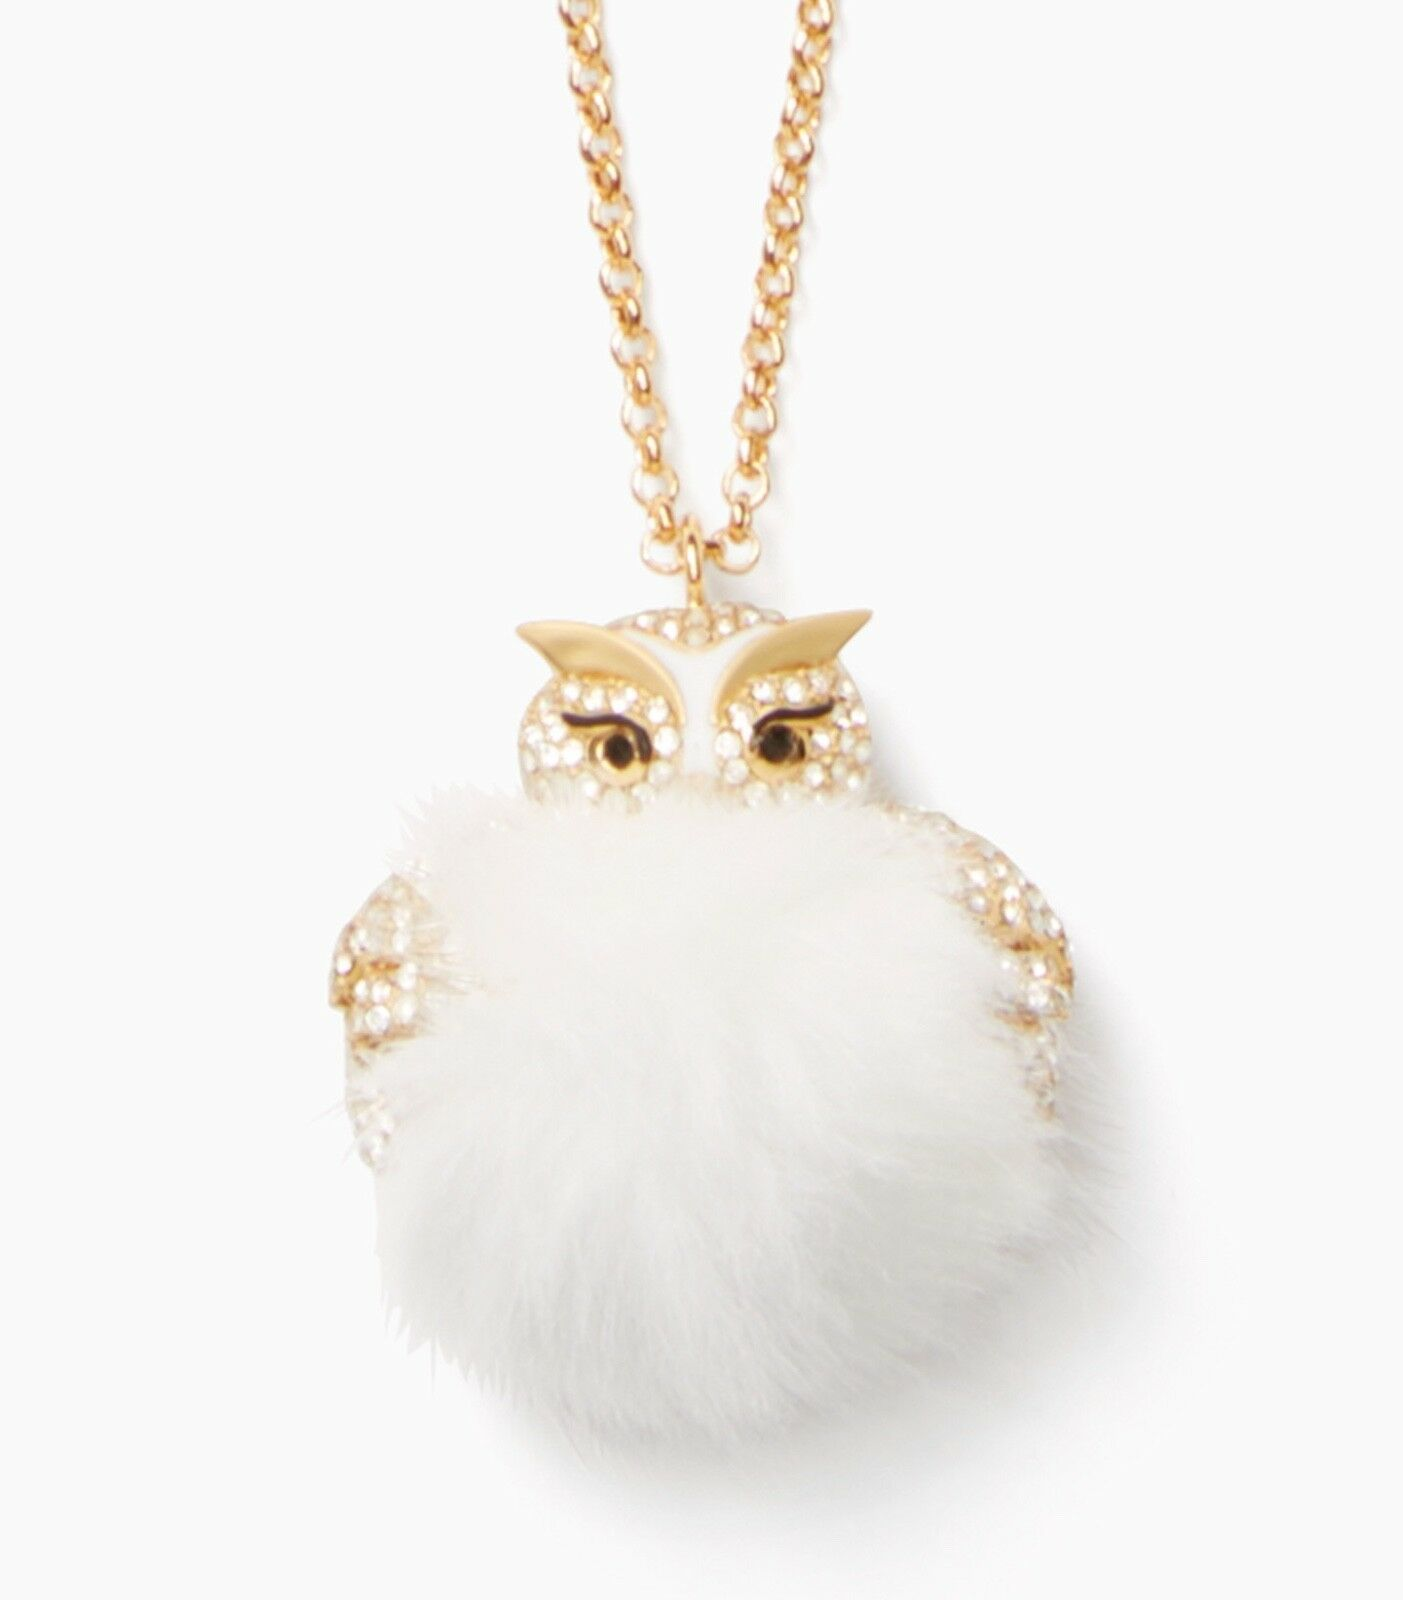 Primary image for Kate Spade New York Necklace Star Bright Owl Pendant NEW